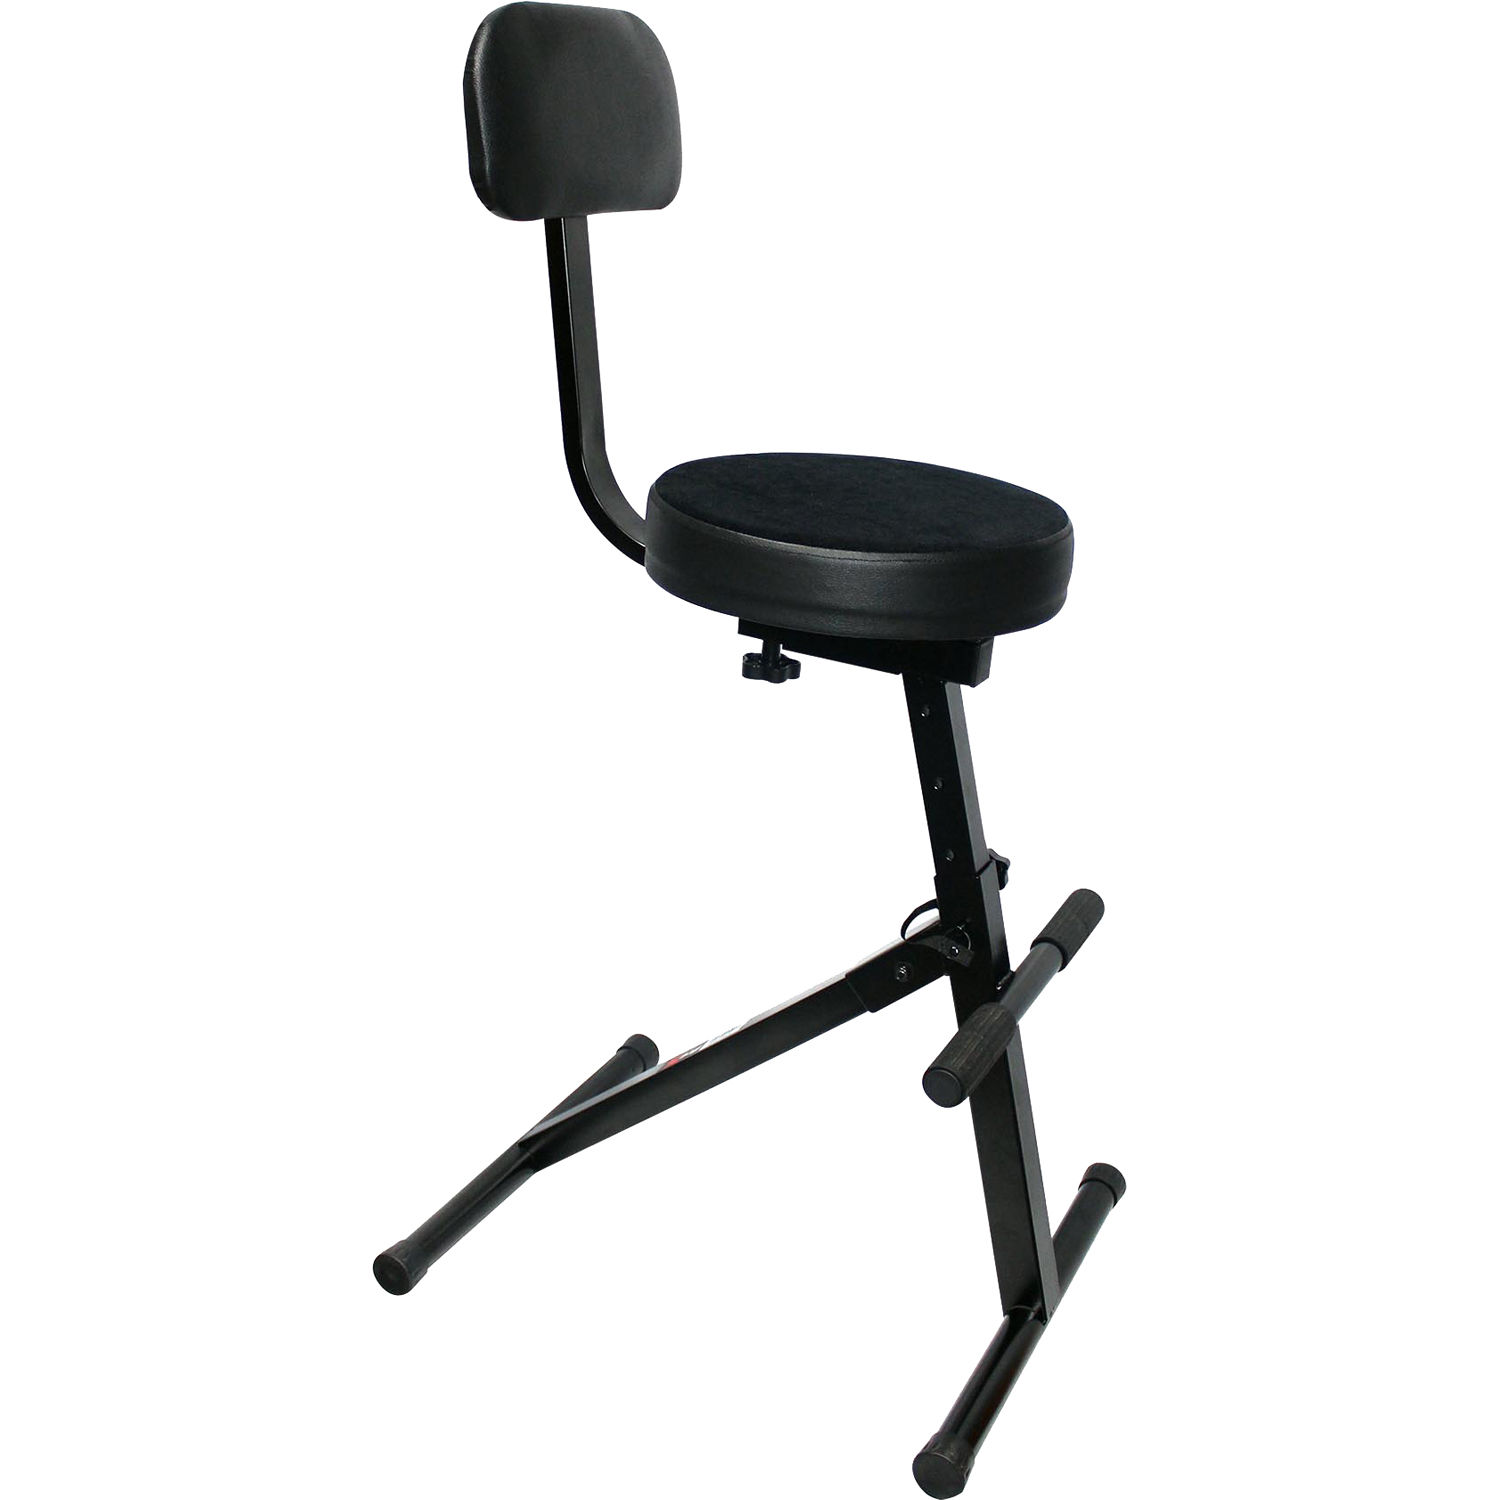 Superb Prox Portable Gig Chair For Live Studio Performance Caraccident5 Cool Chair Designs And Ideas Caraccident5Info